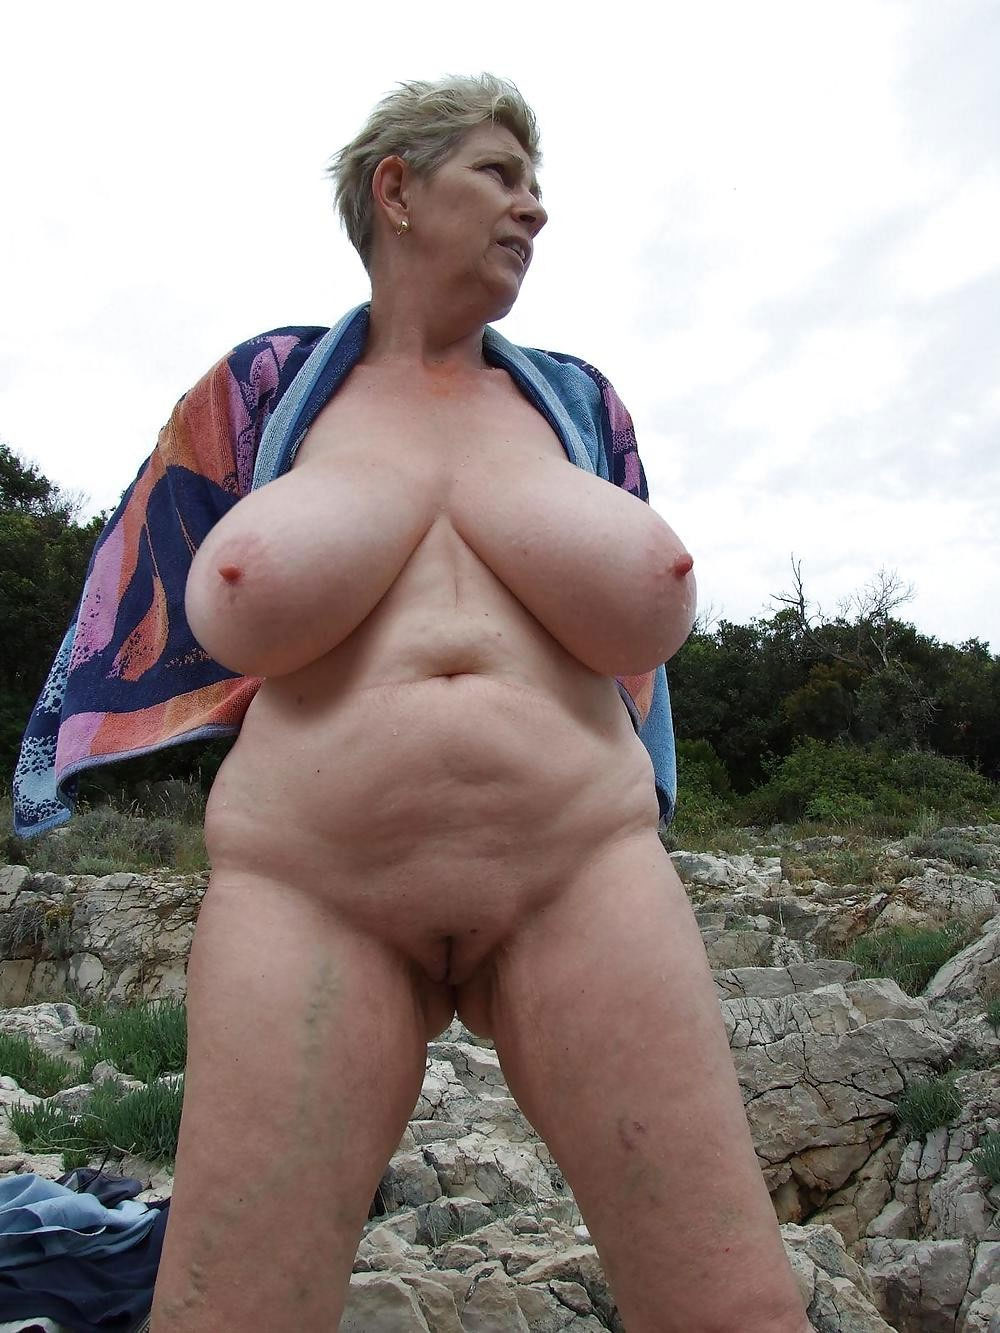 You Maturing breasts normal or not have hit